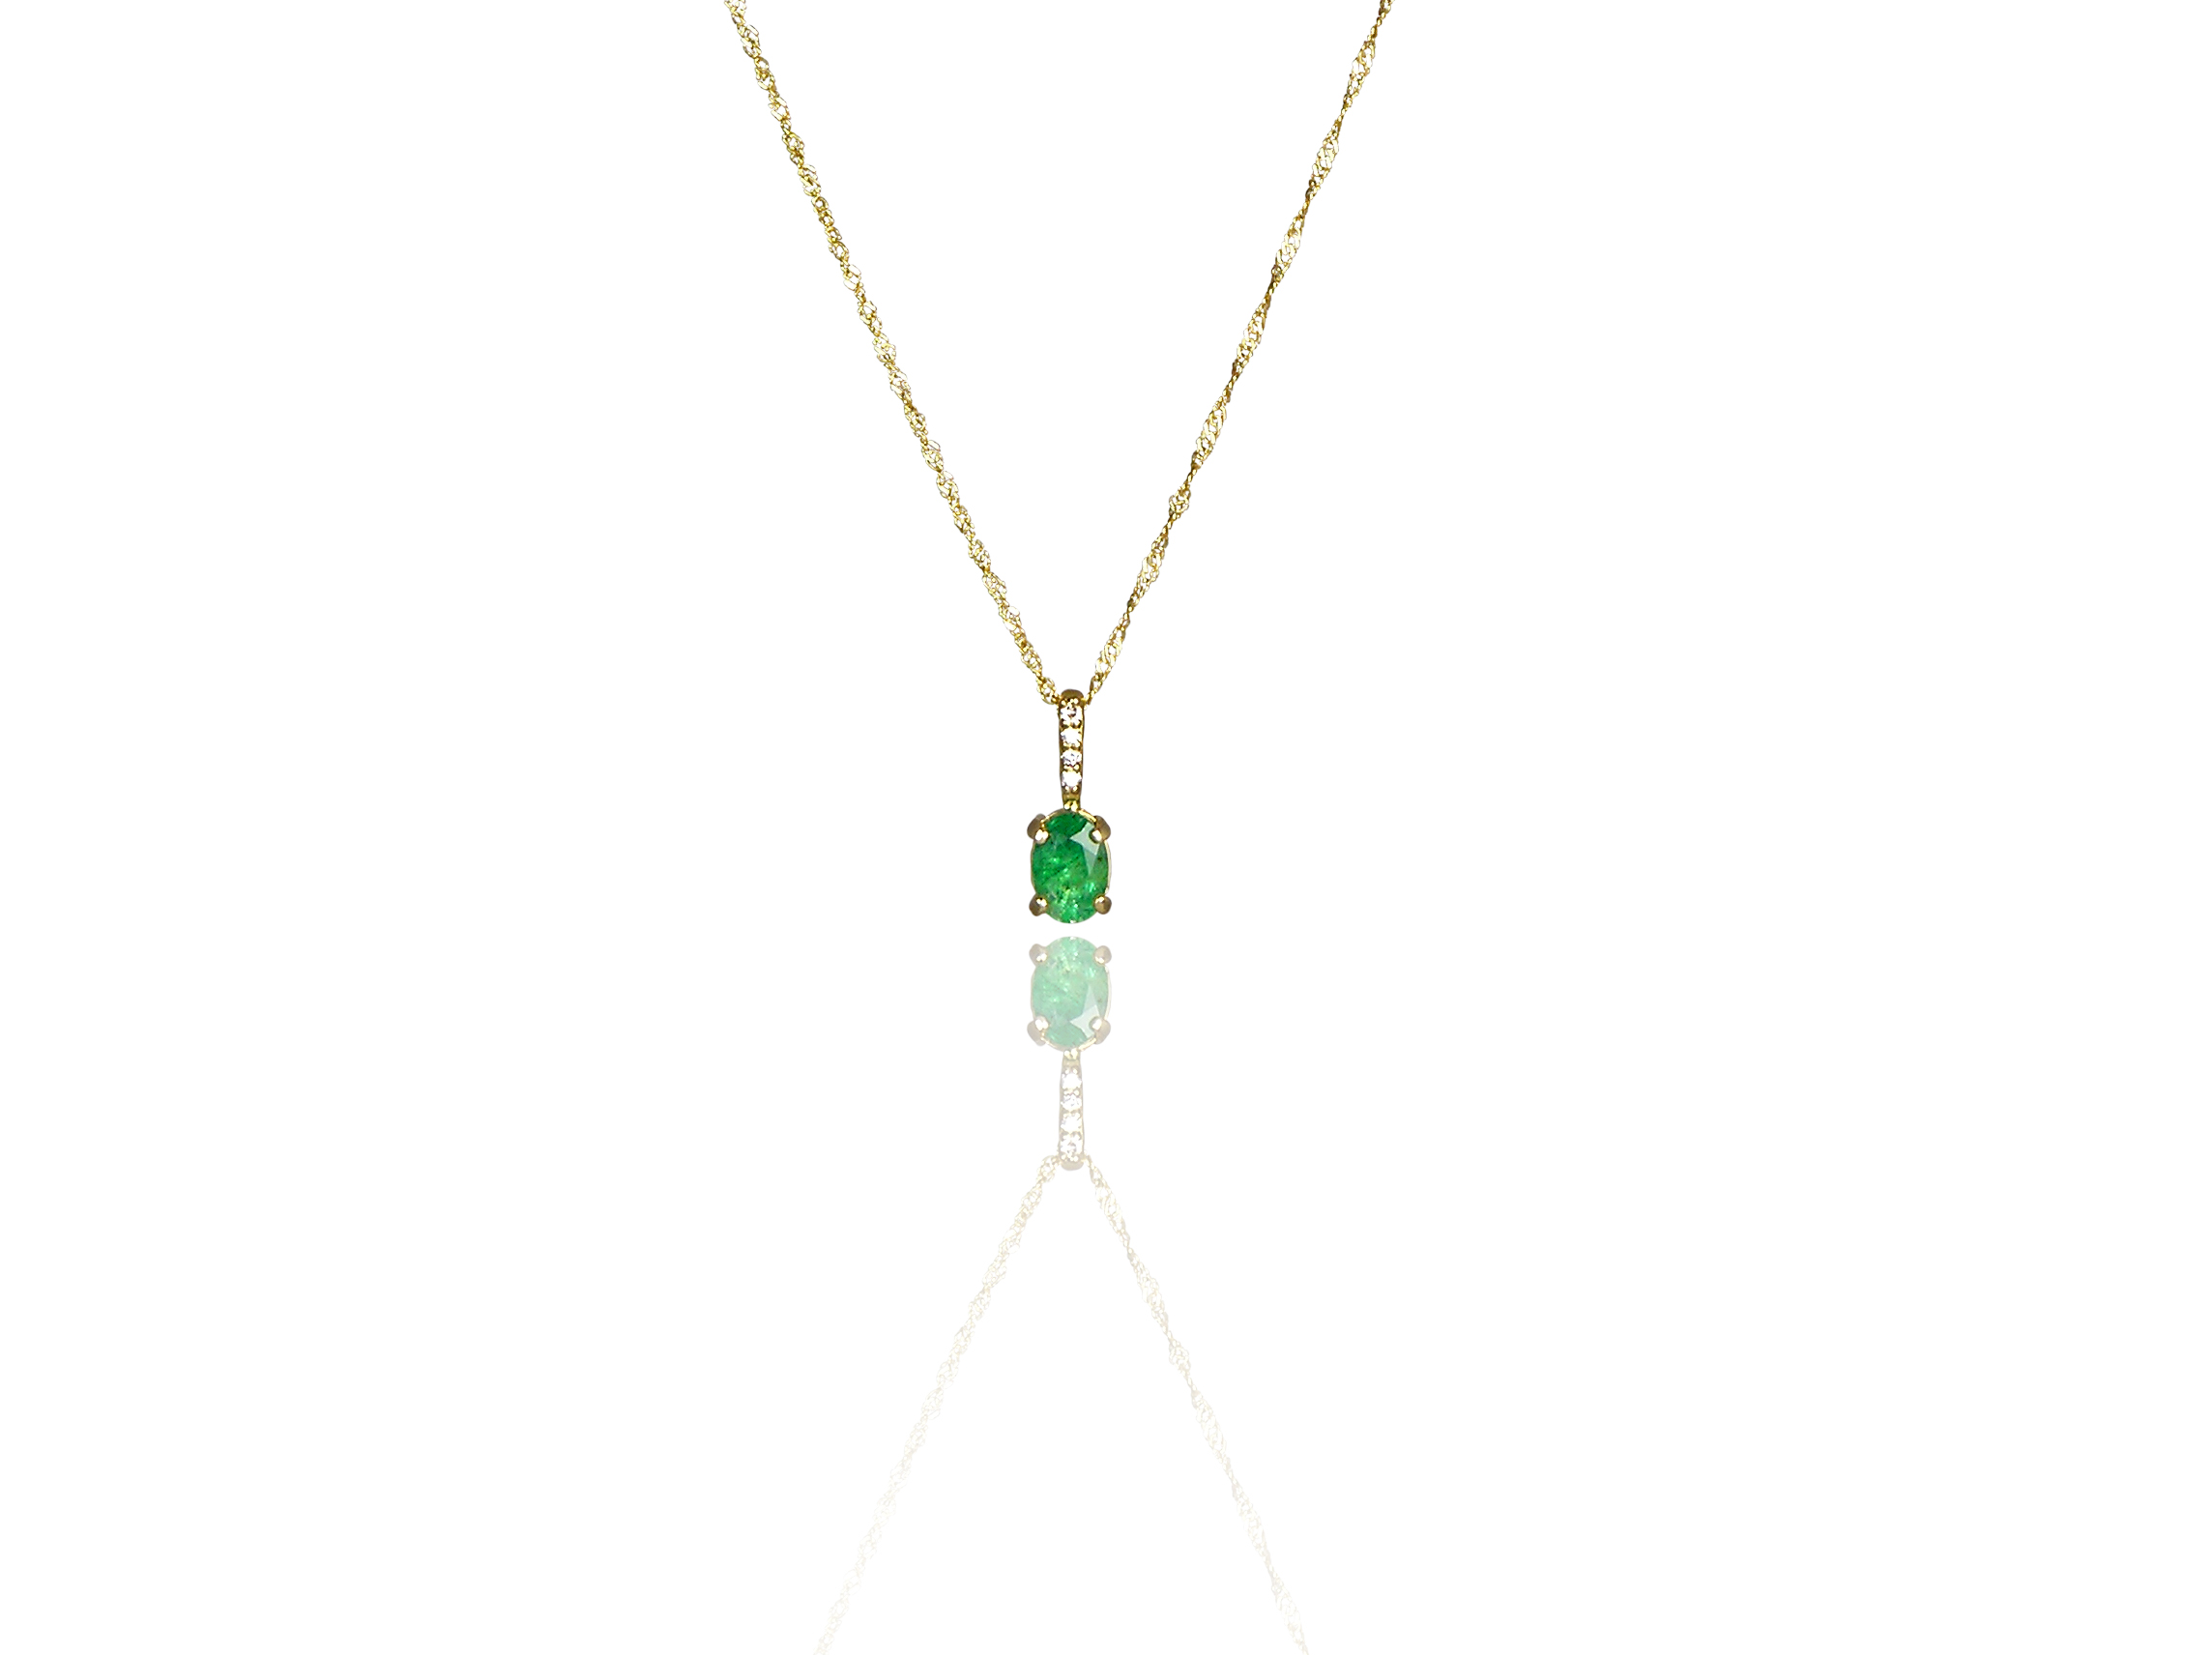 This Stunning Emerald Pendant in 14k Gold from Pearls International would make Cleopatra Green With Envy!